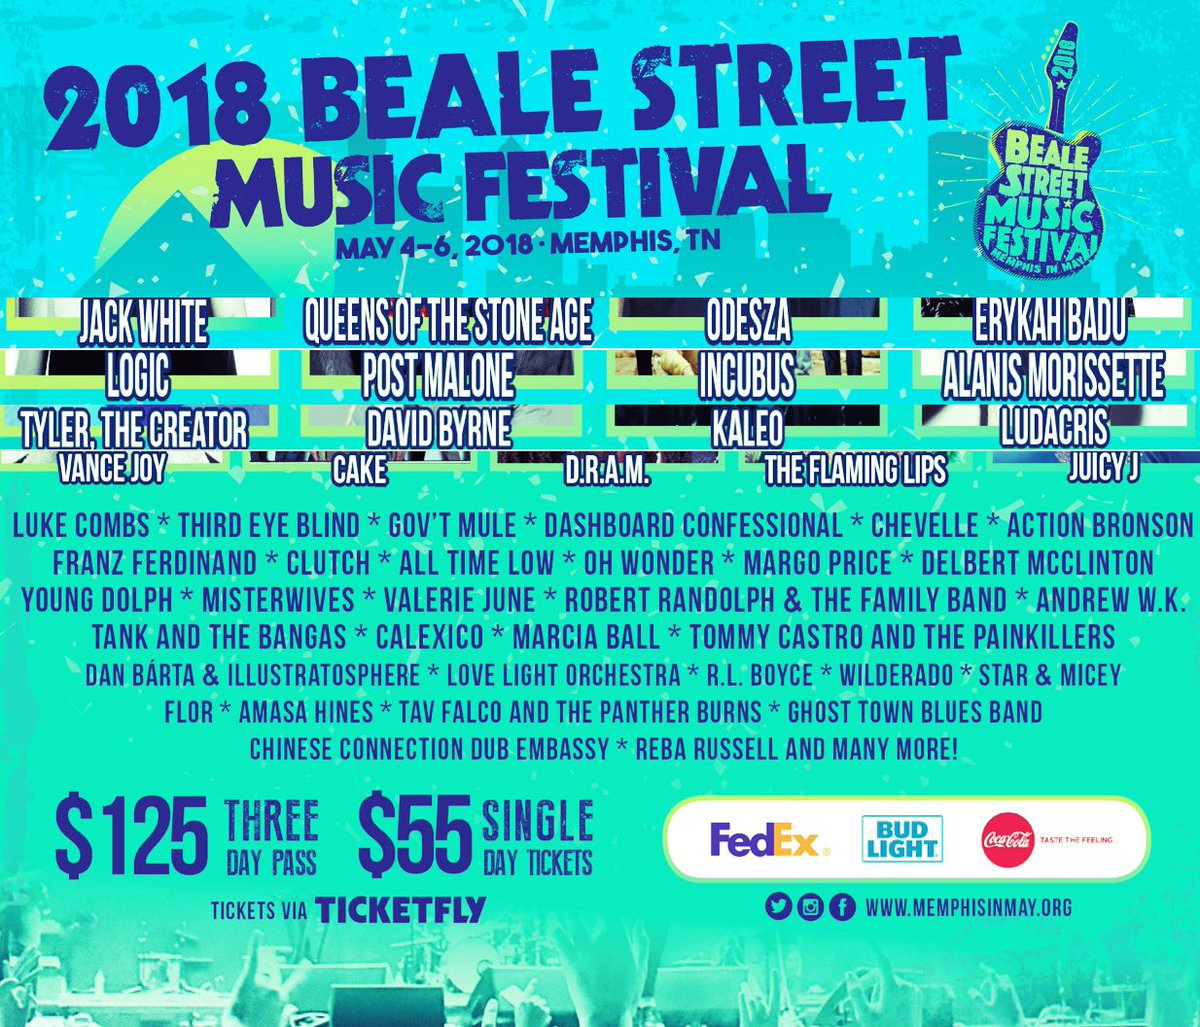 Just announced Chevelle will be playing the Beale Street Music Festival on 5/5. This is one of the few show we will be playing this year as we write and record the new album, so come on out!